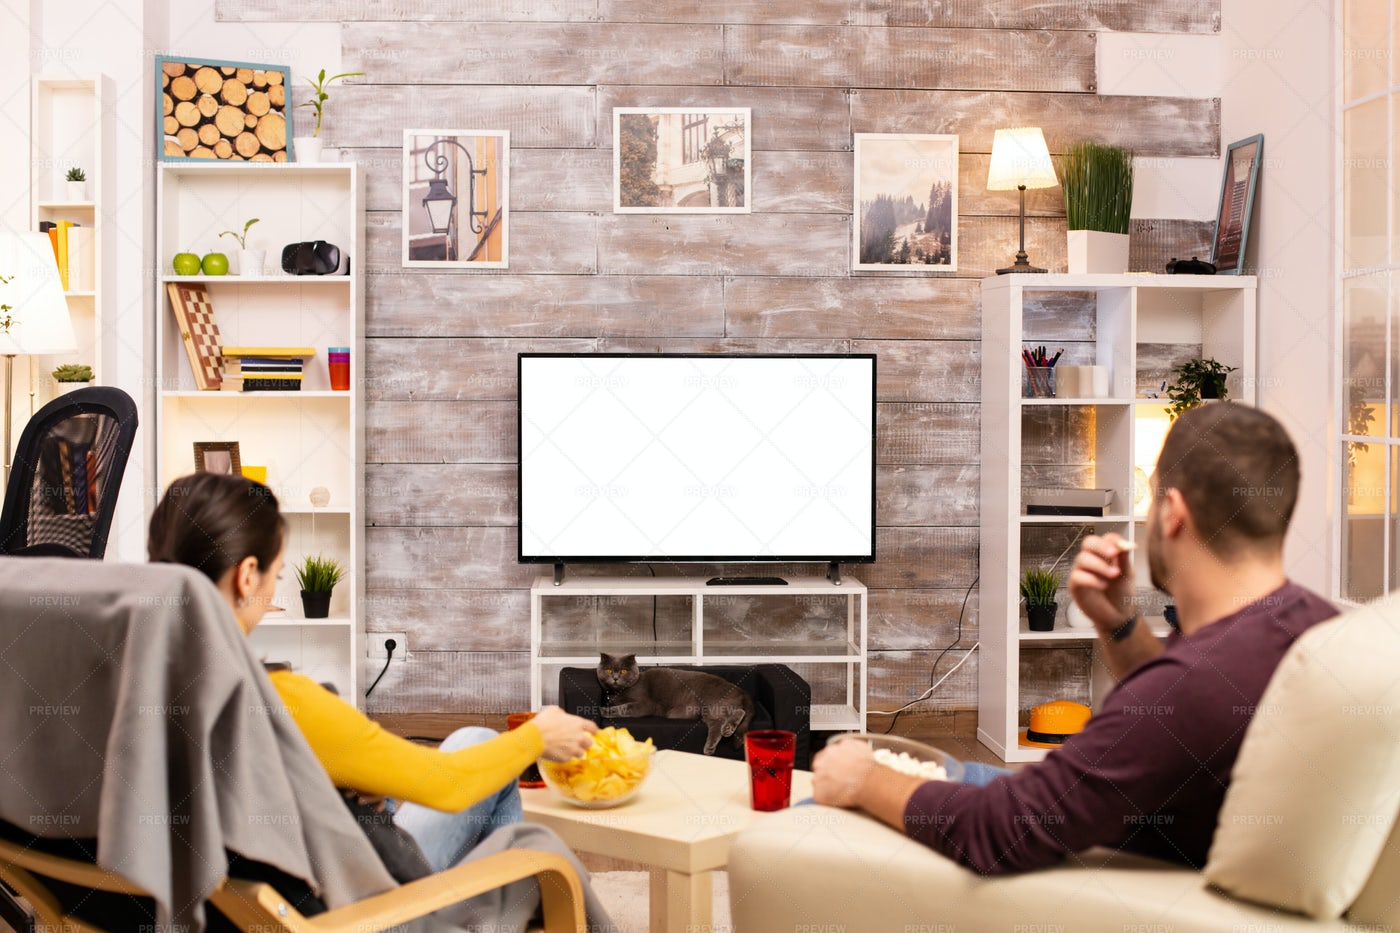 Couple Snacking And Watching TV: Stock Photos